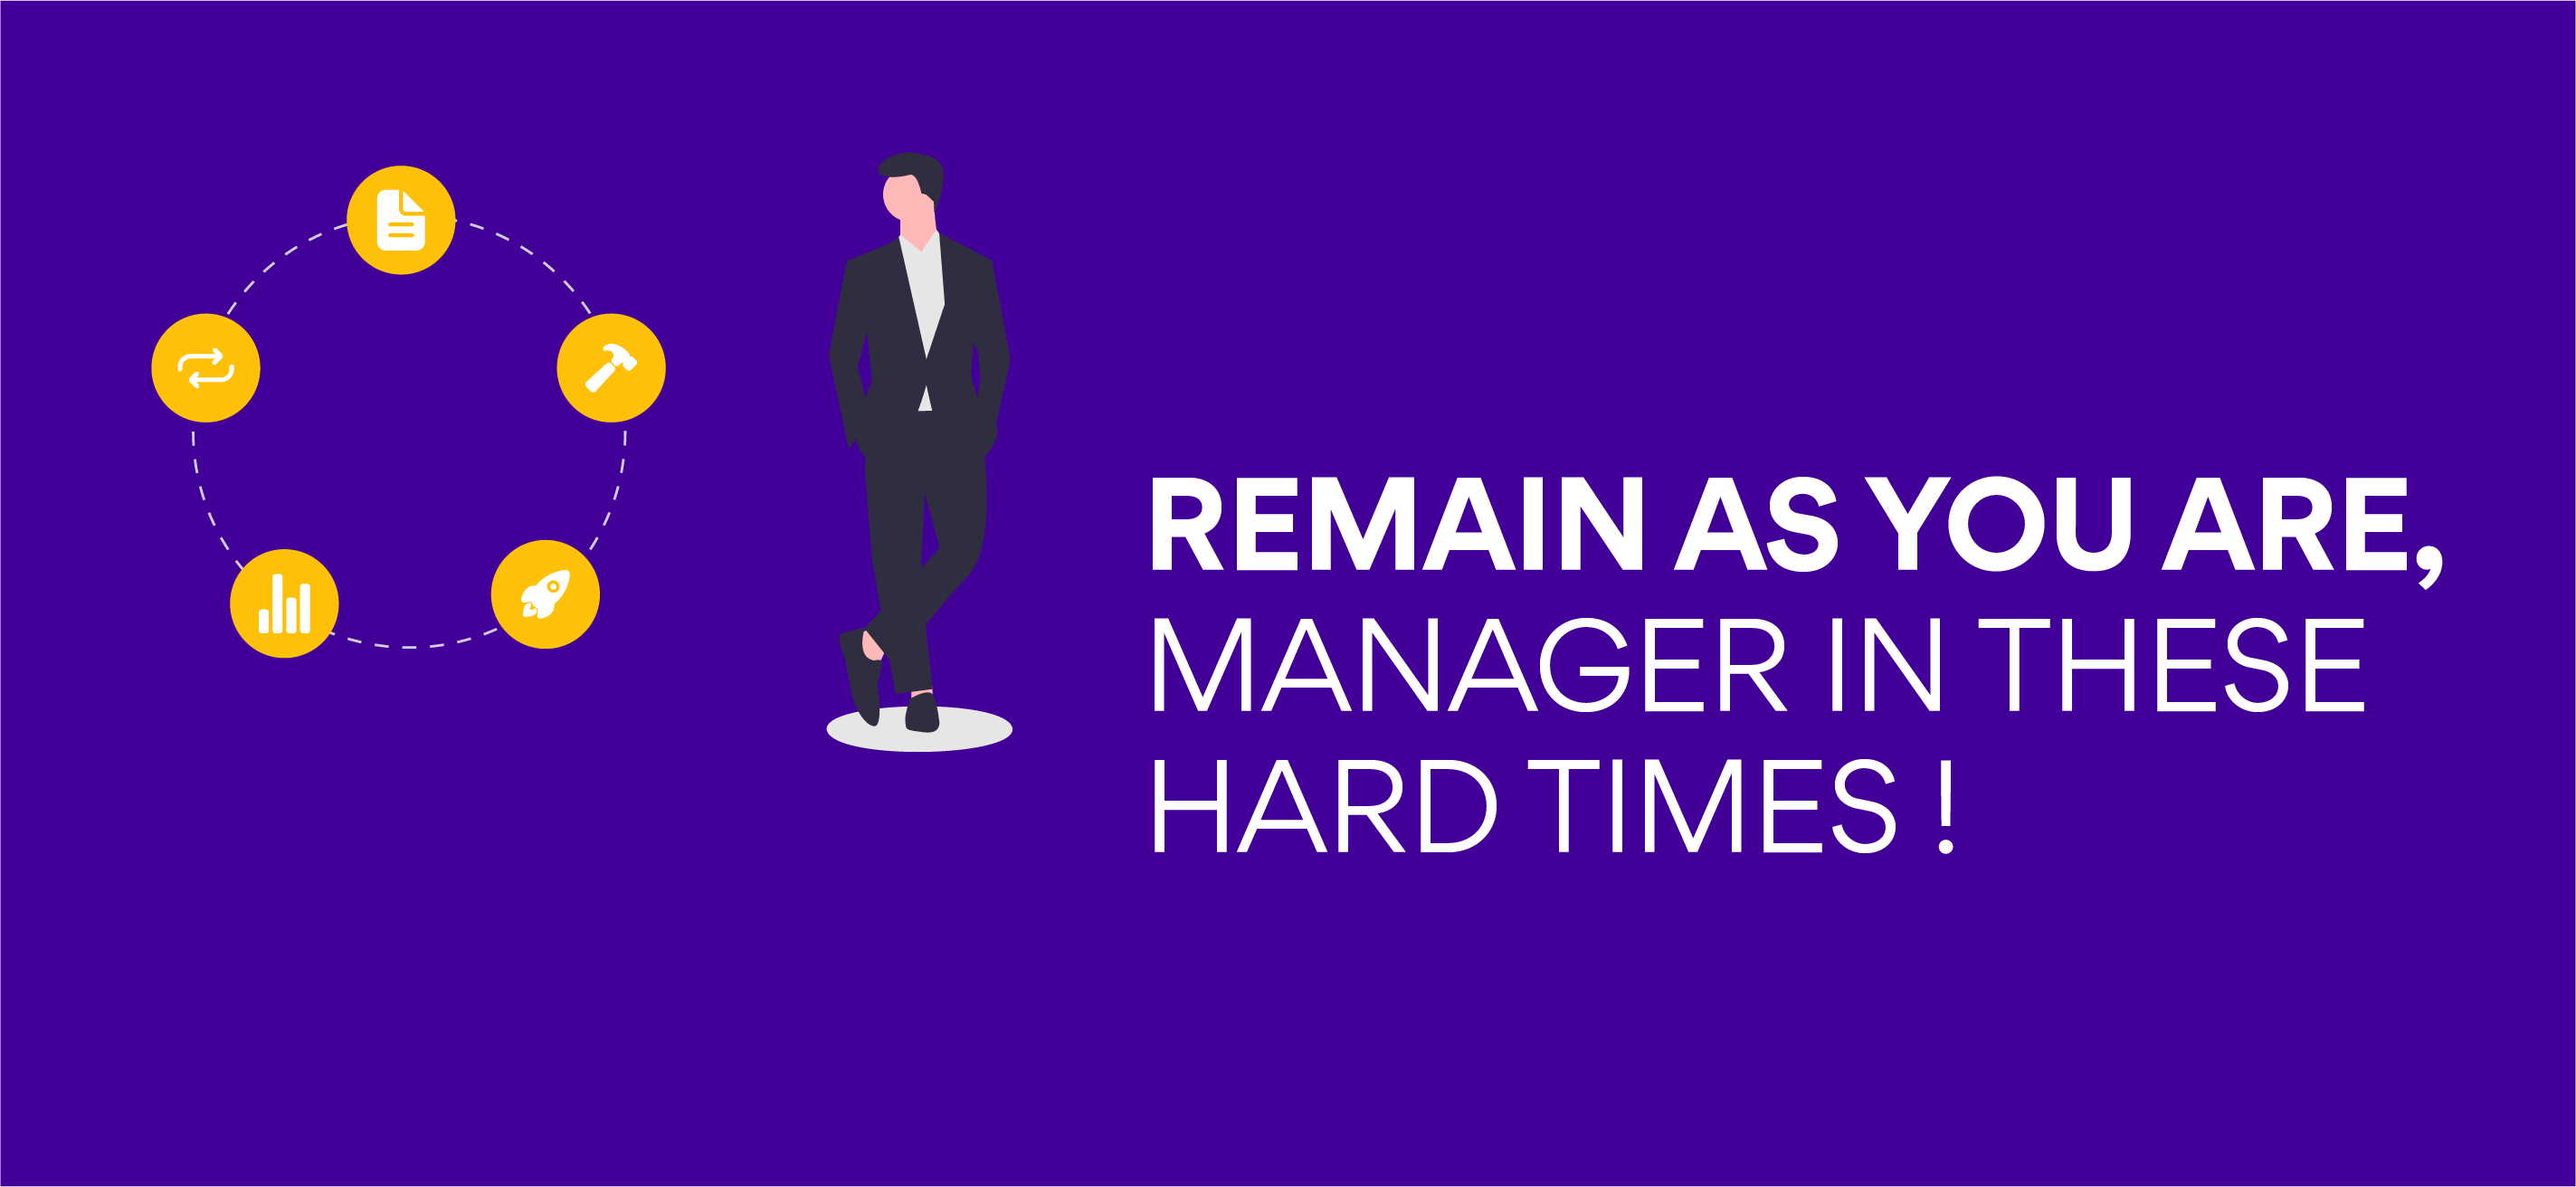 Remain as you are, Manager in these hard times!